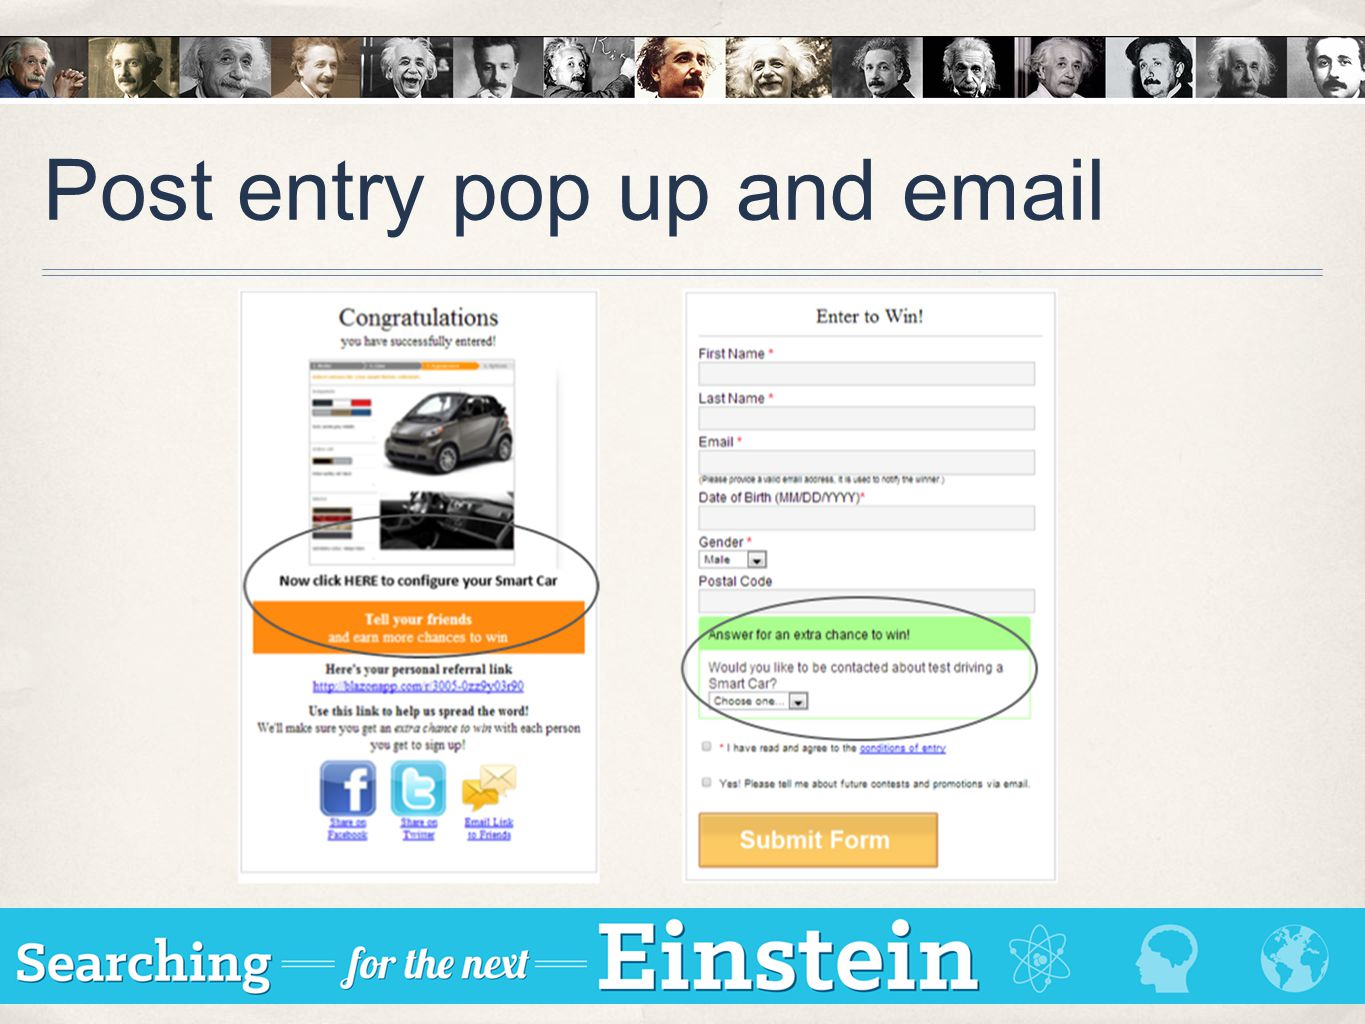 Post entry pop up and email